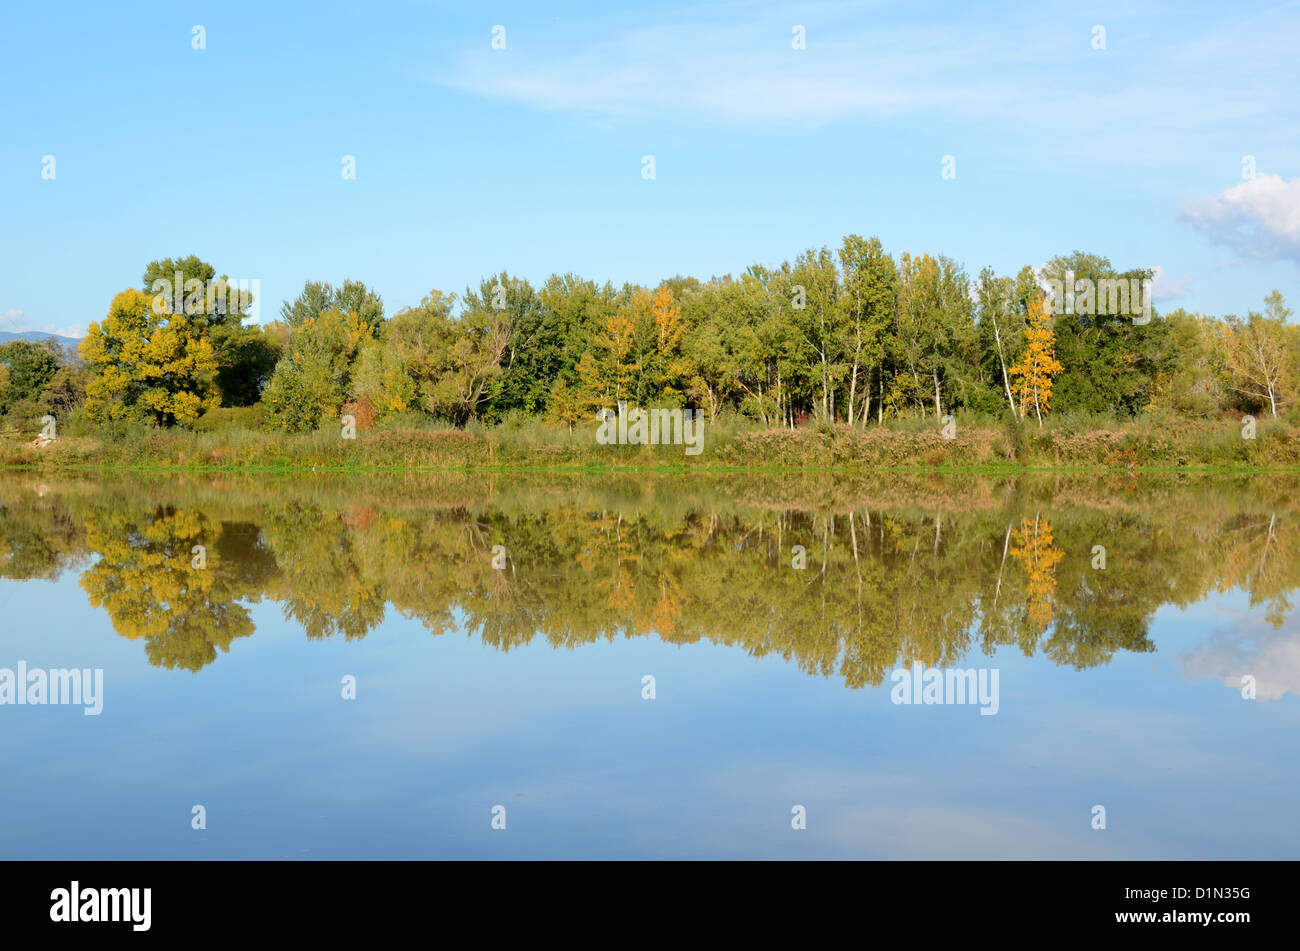 Durance River and Autumn Trees Reflected in River near Pertuis Provence France - Stock Image